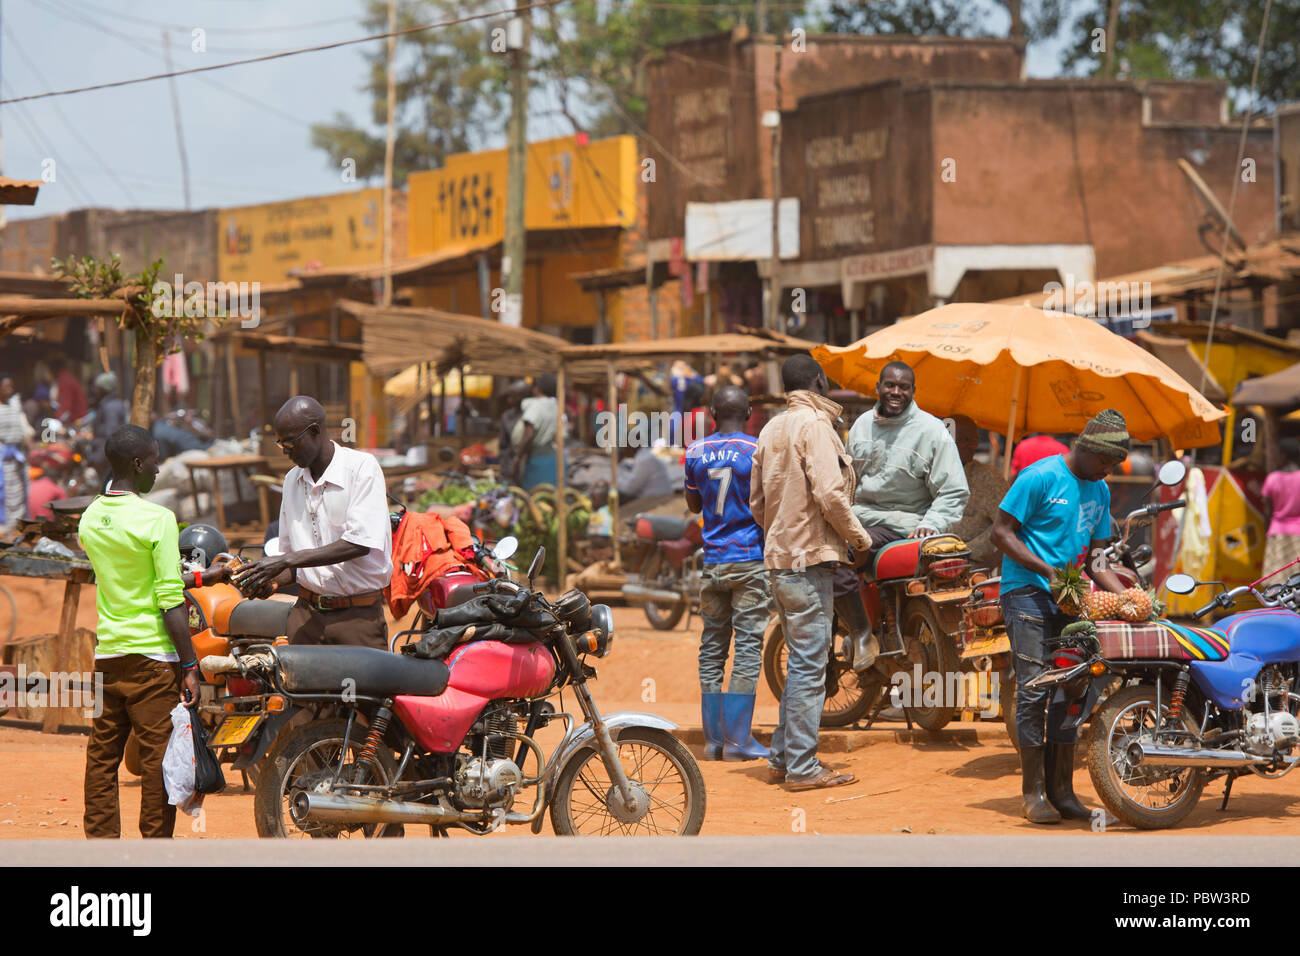 Small Town, Street Scene, Men with Motorcycles, Crowded Busy Market, Transport, East Africa, Uganda - Stock Image